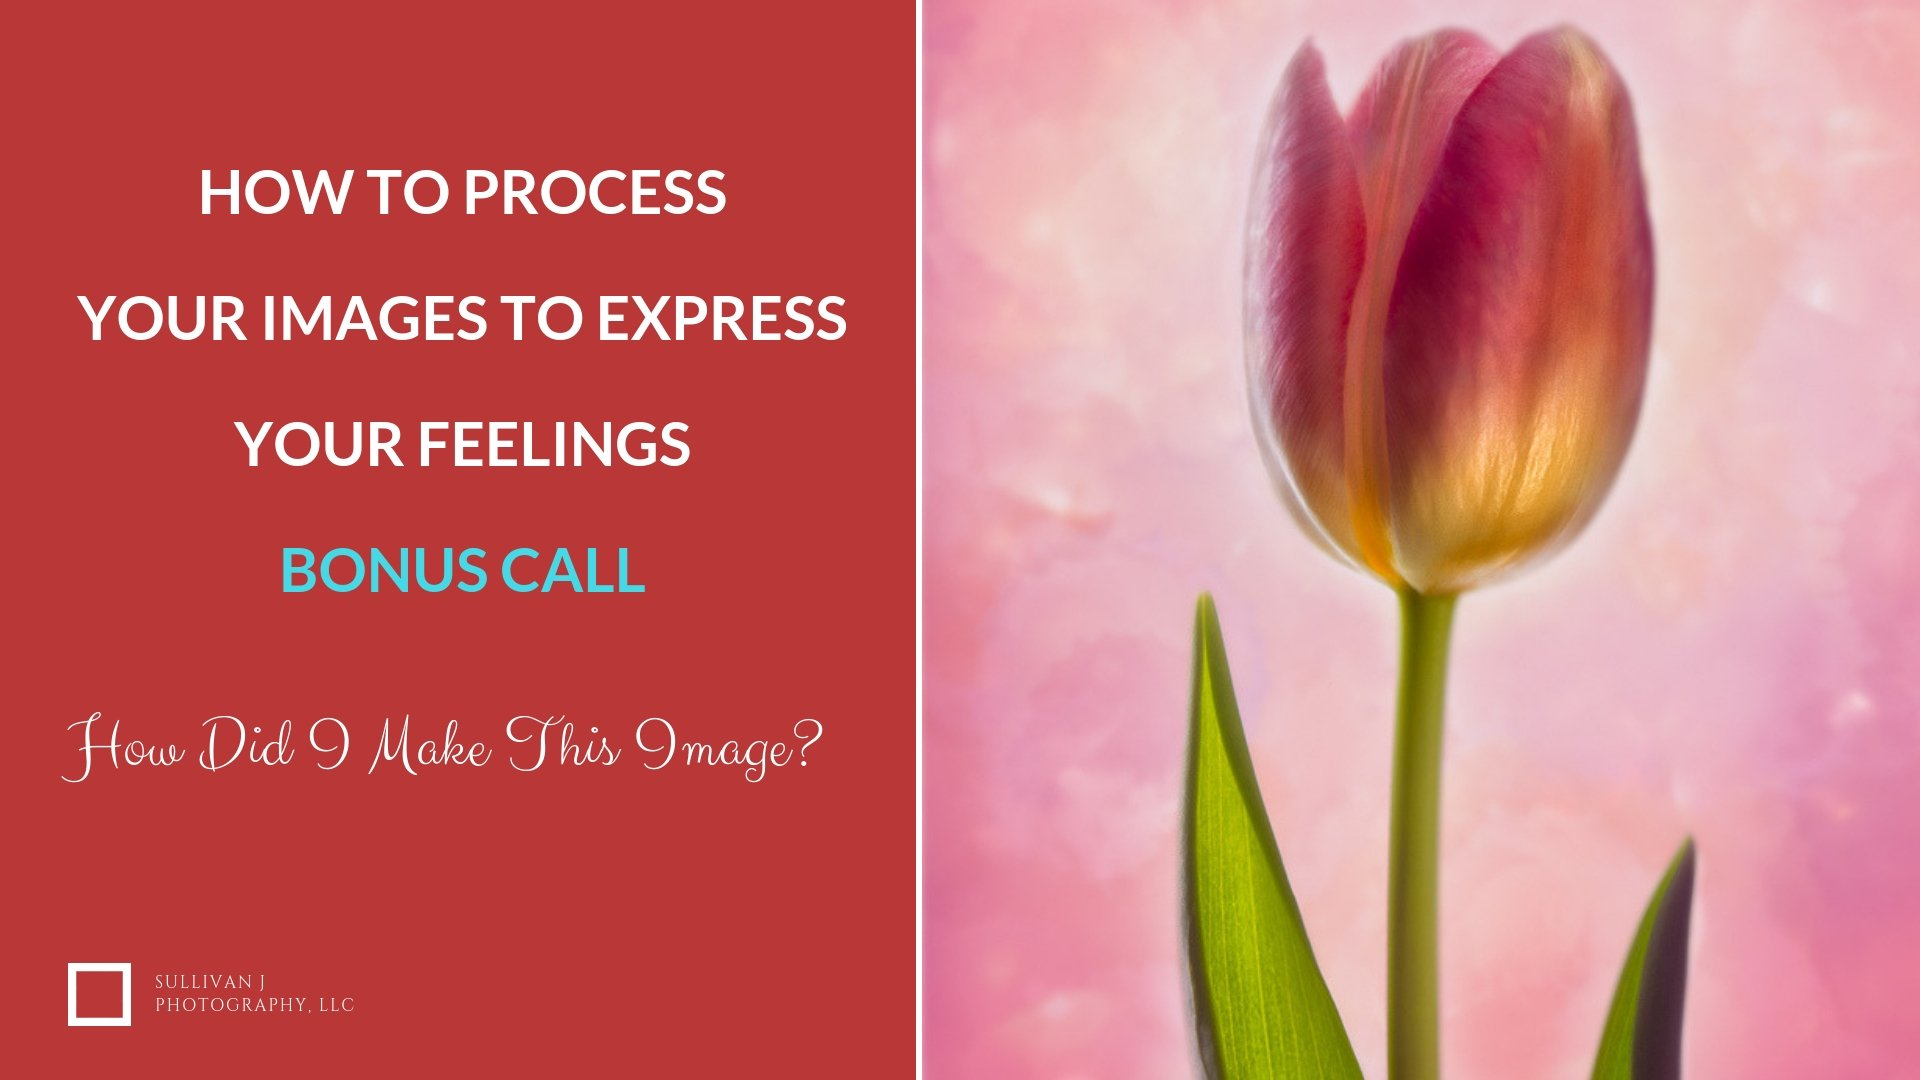 How To Process Your Images to Express Your Feelings